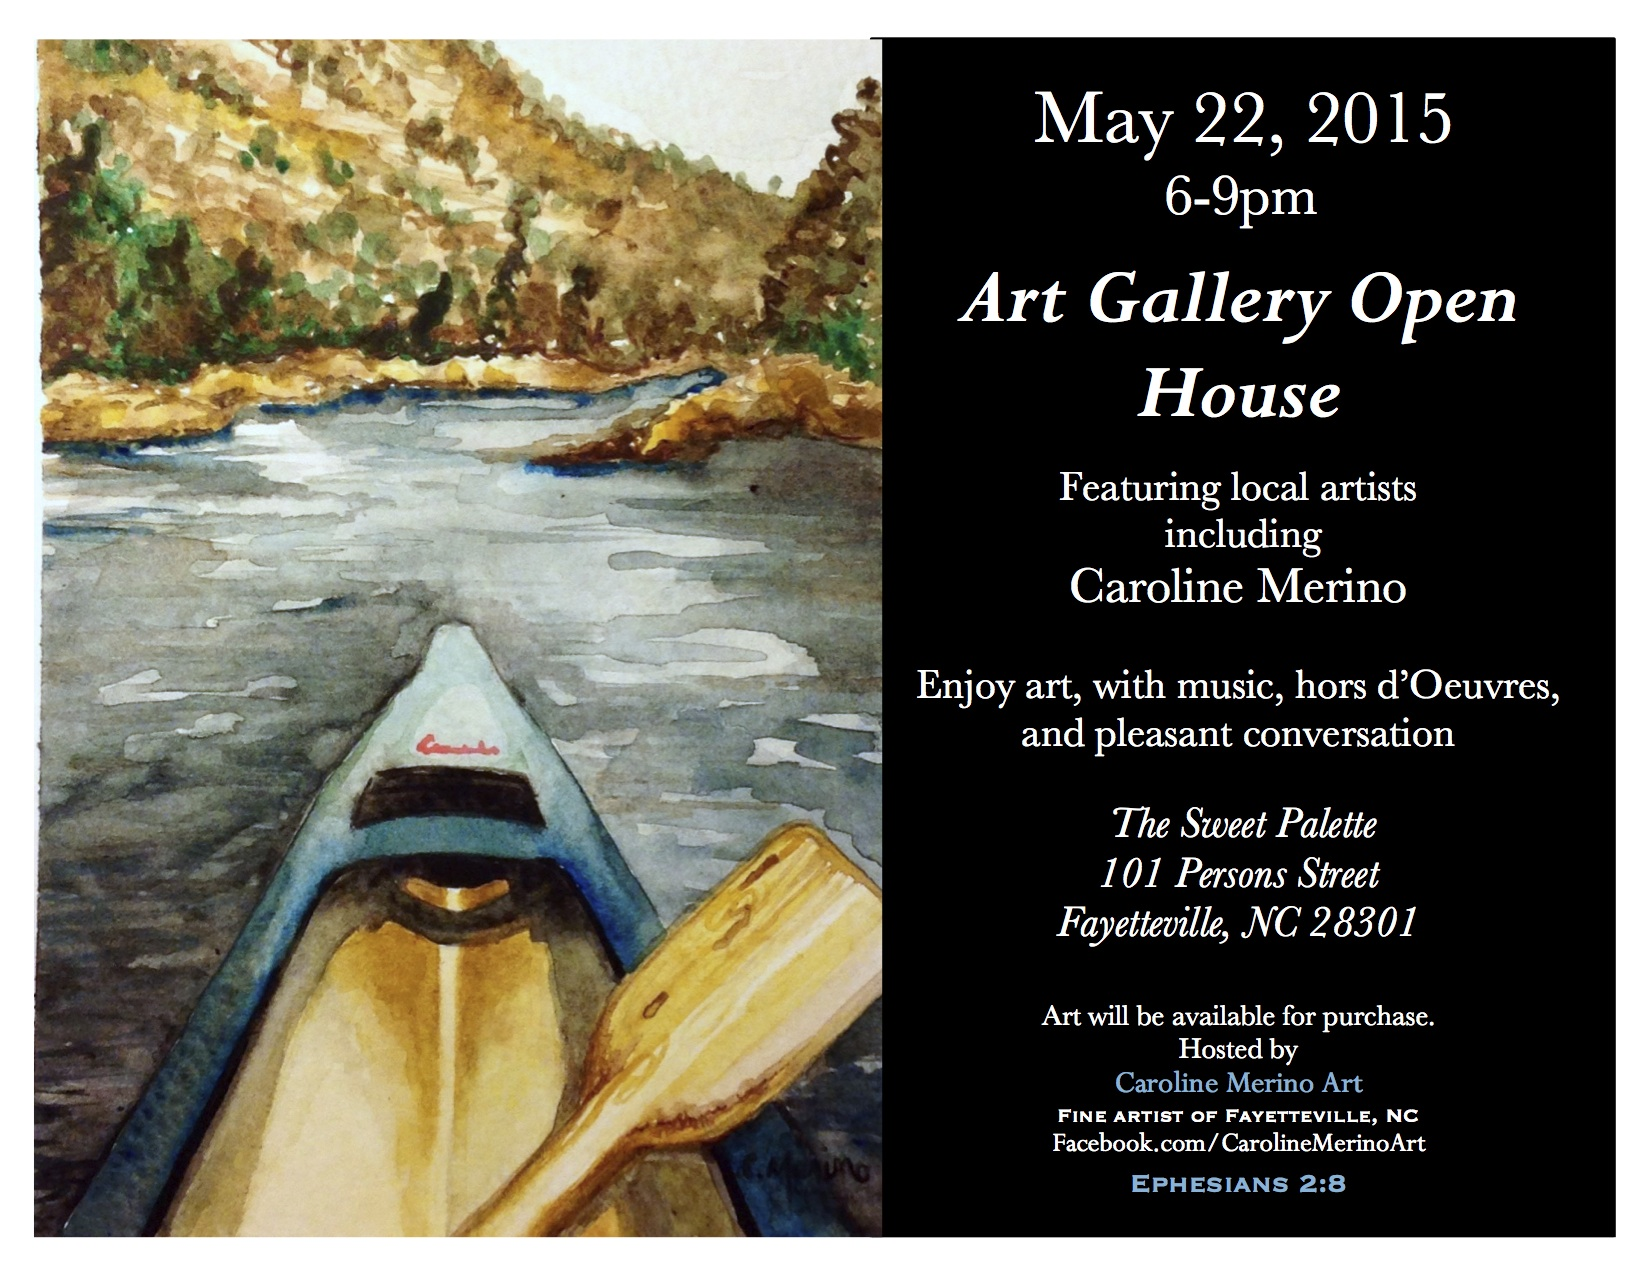 Sweet Palete Art Gallery Open House